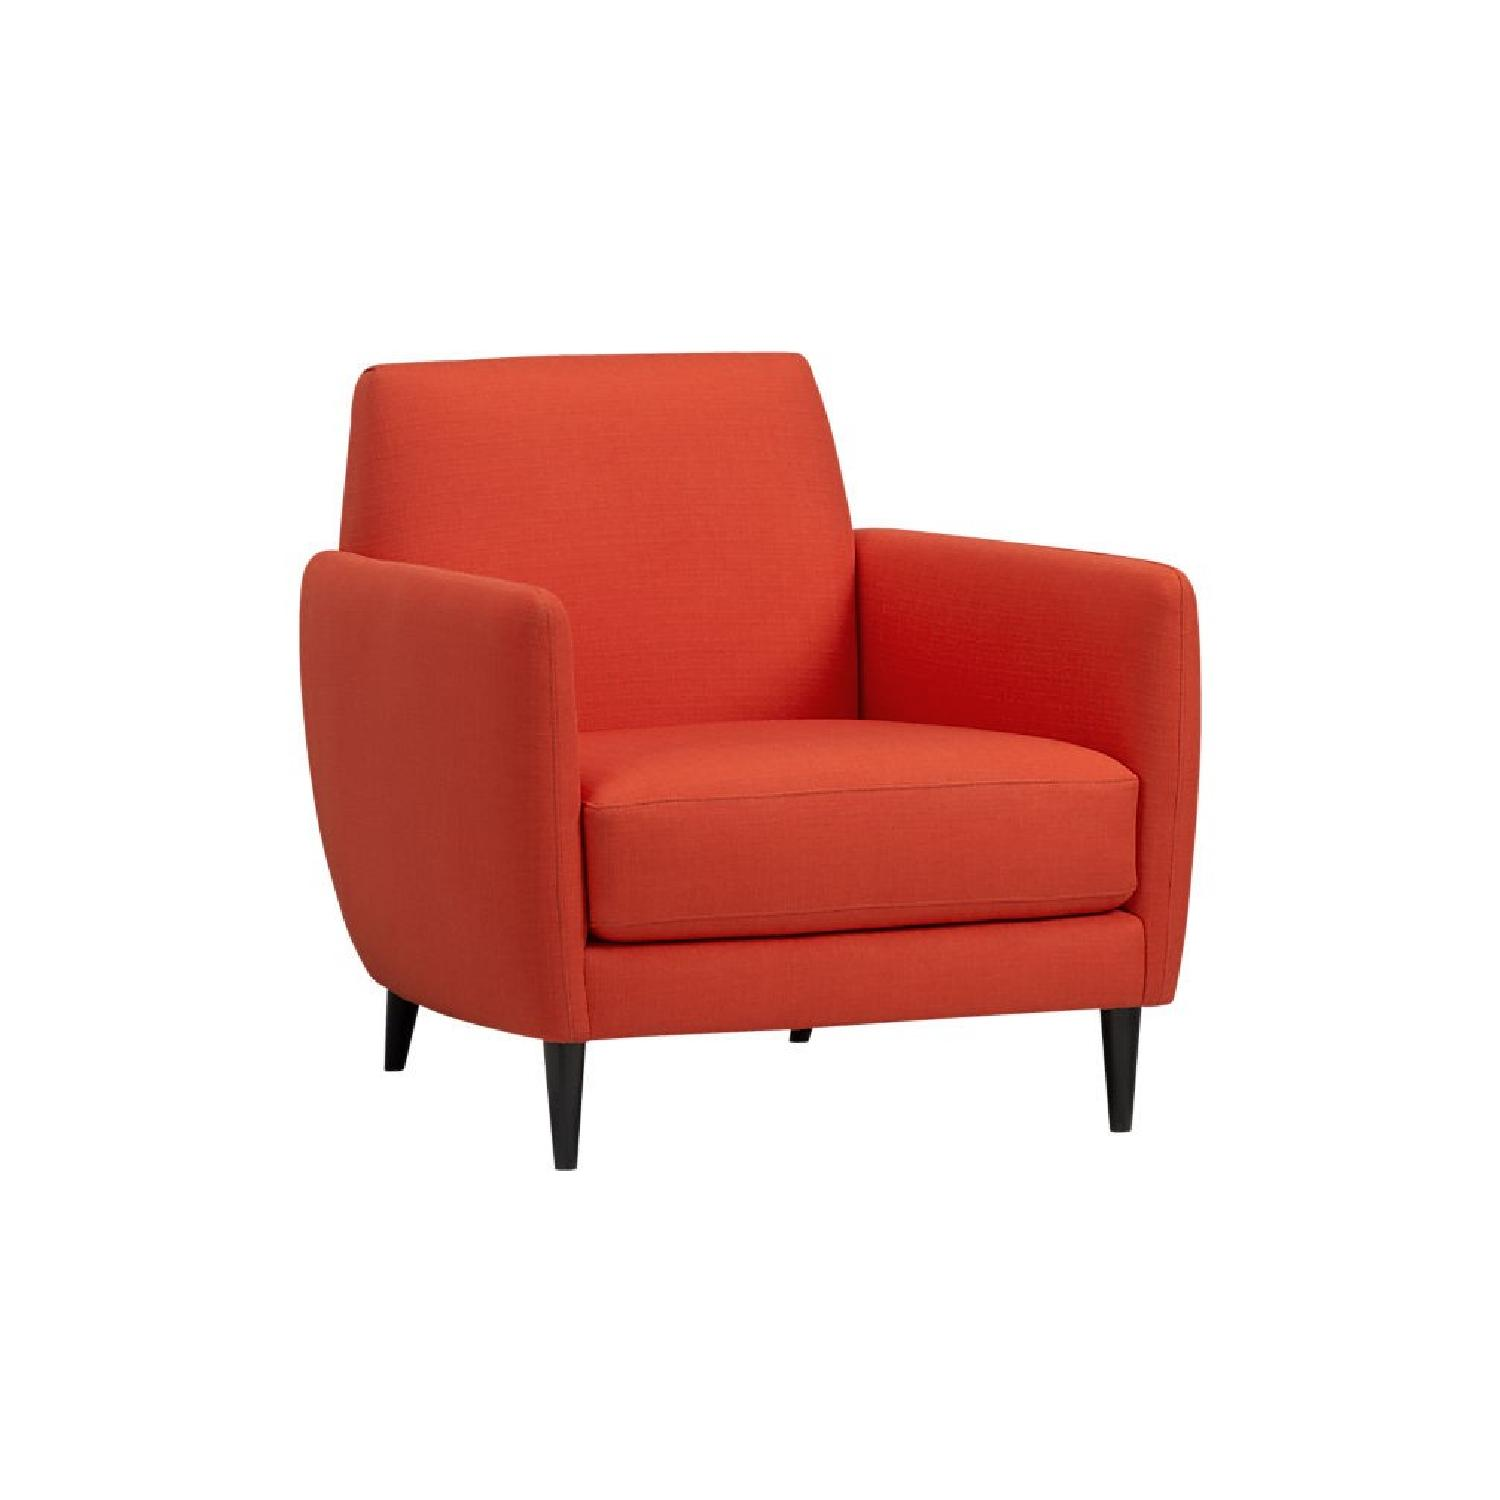 CB2 Accent Chair